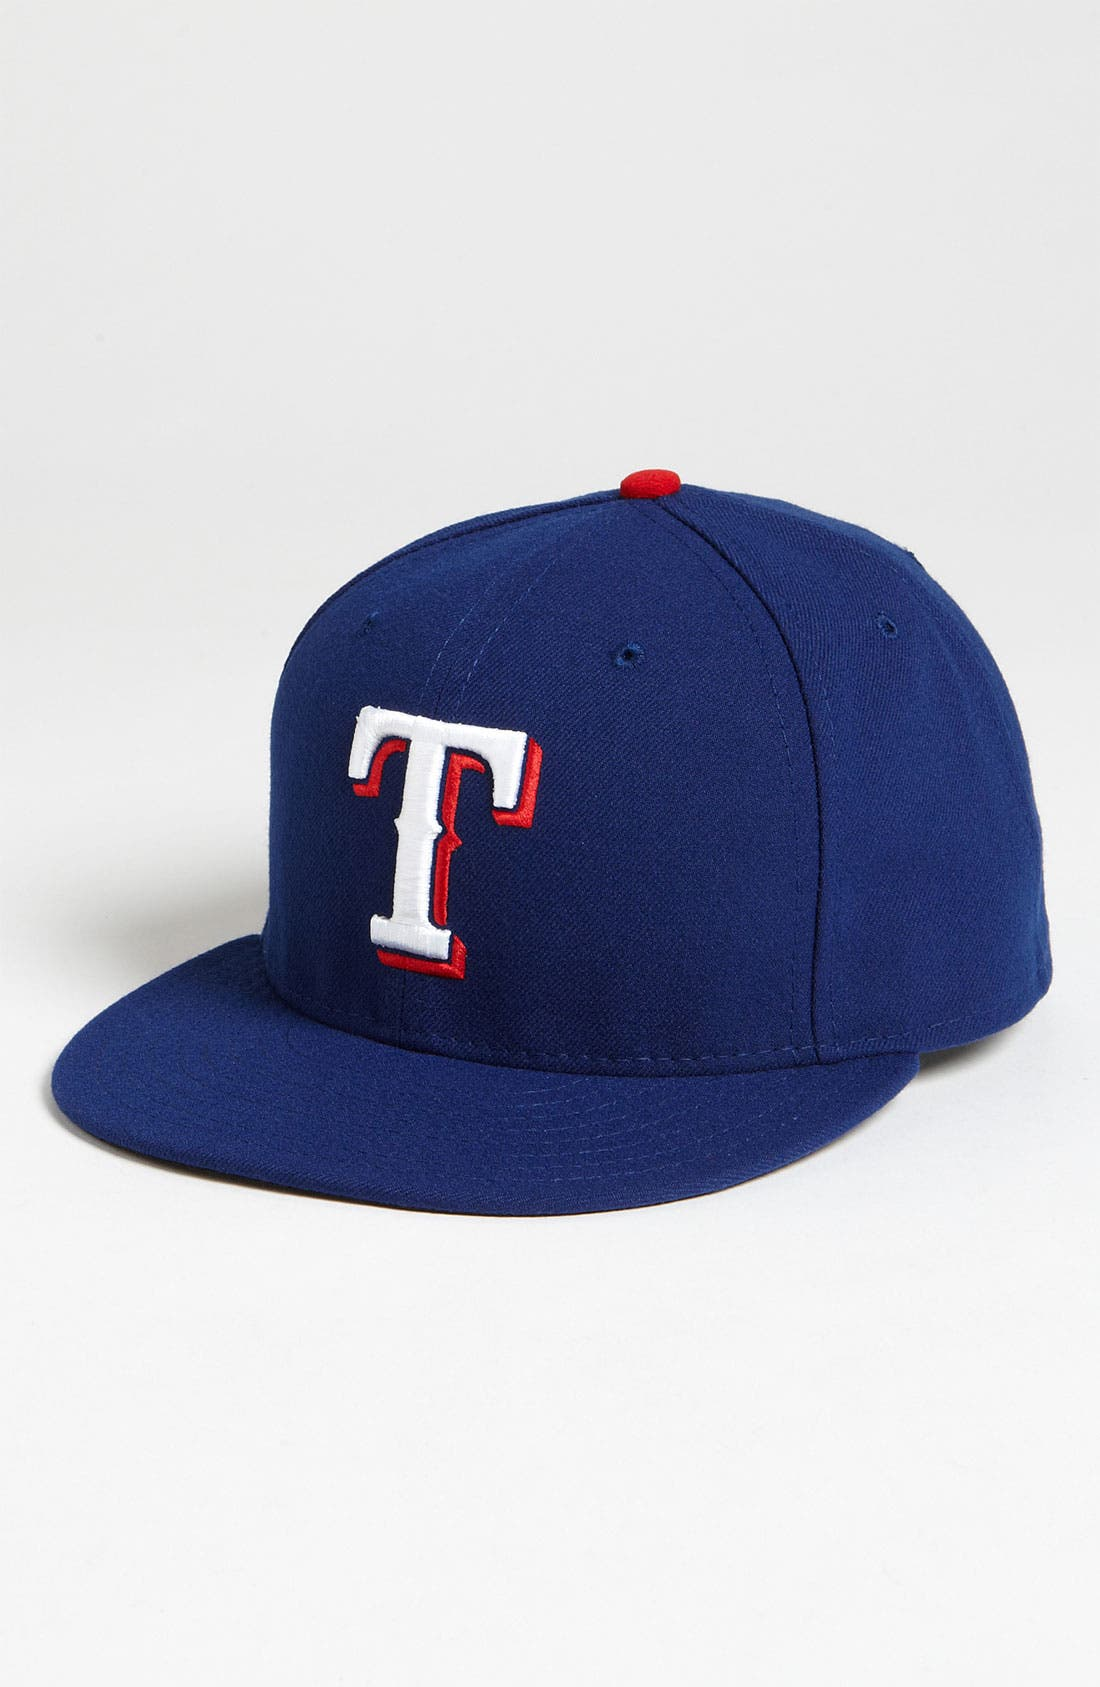 Main Image - New Era Cap 'Texas Rangers' Baseball Cap